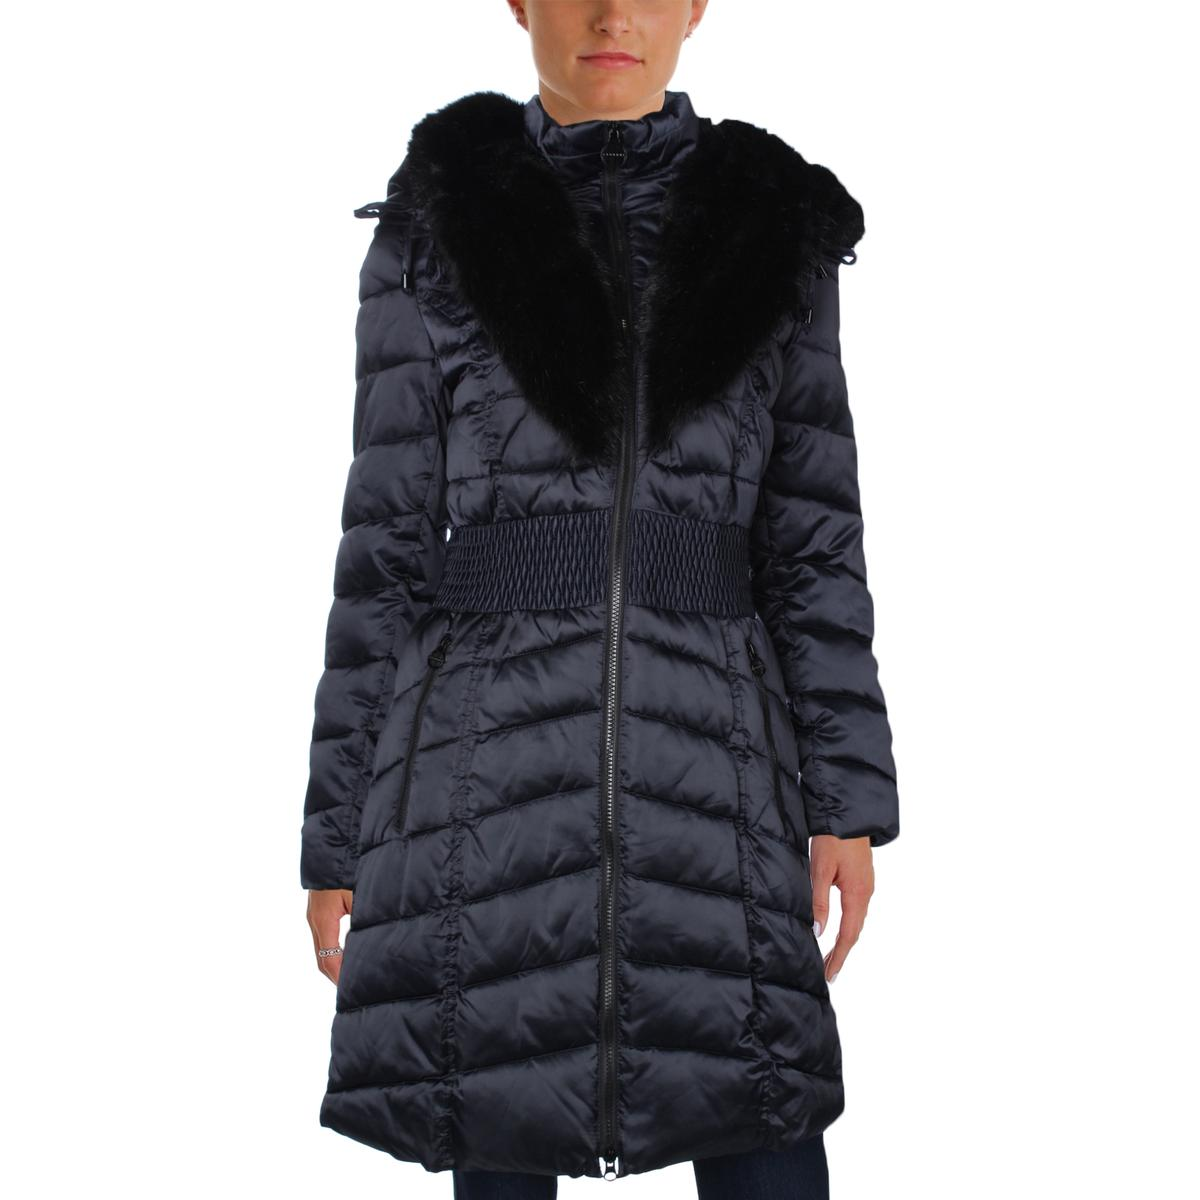 Laundry by Shelli Segal Womens Smocked Faux Fur Parka by Laundry by Shelli Segal